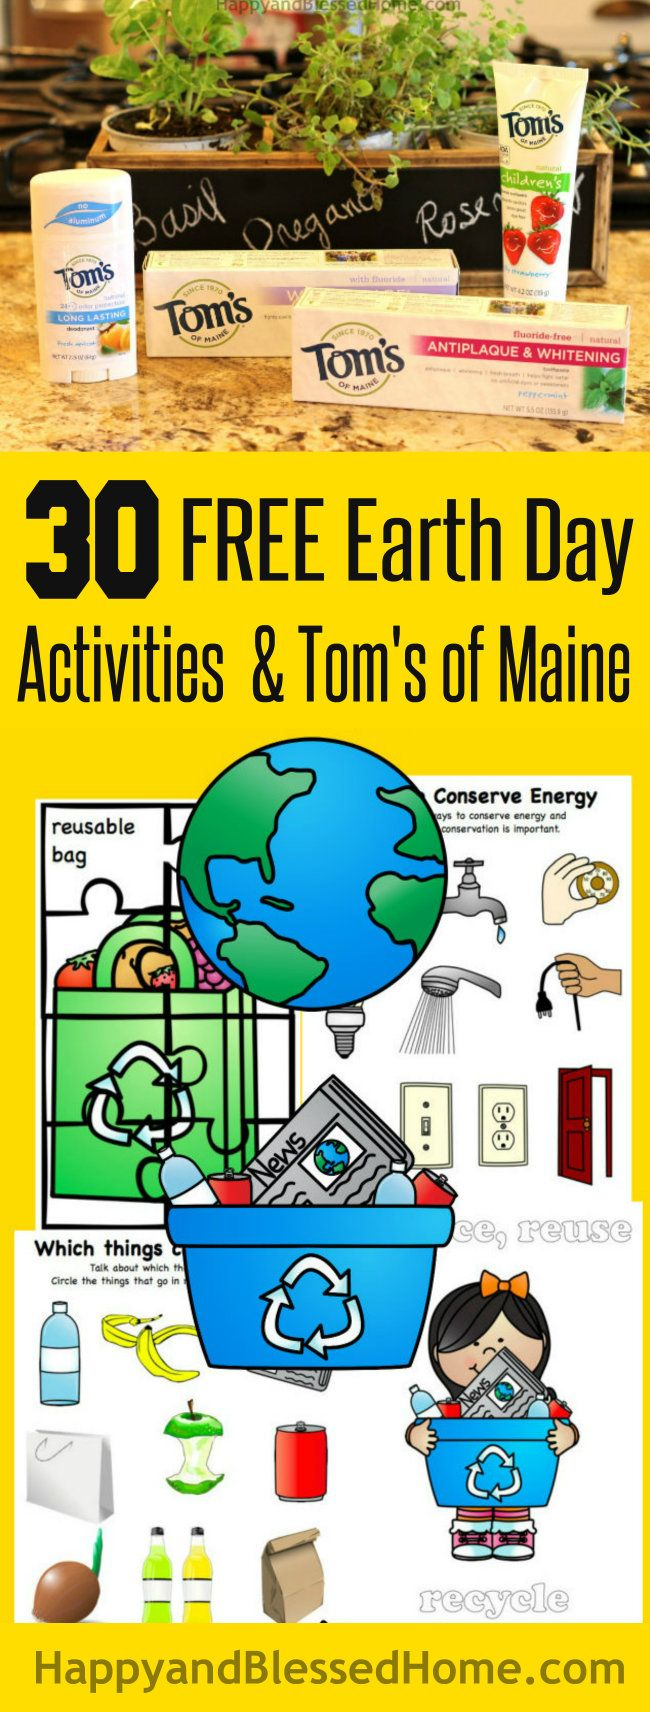 Reduce reuse recycle activities - 30 Pages Of Free Earth Day Activities For Kids With Free Earth Day Worksheets With Puzzles